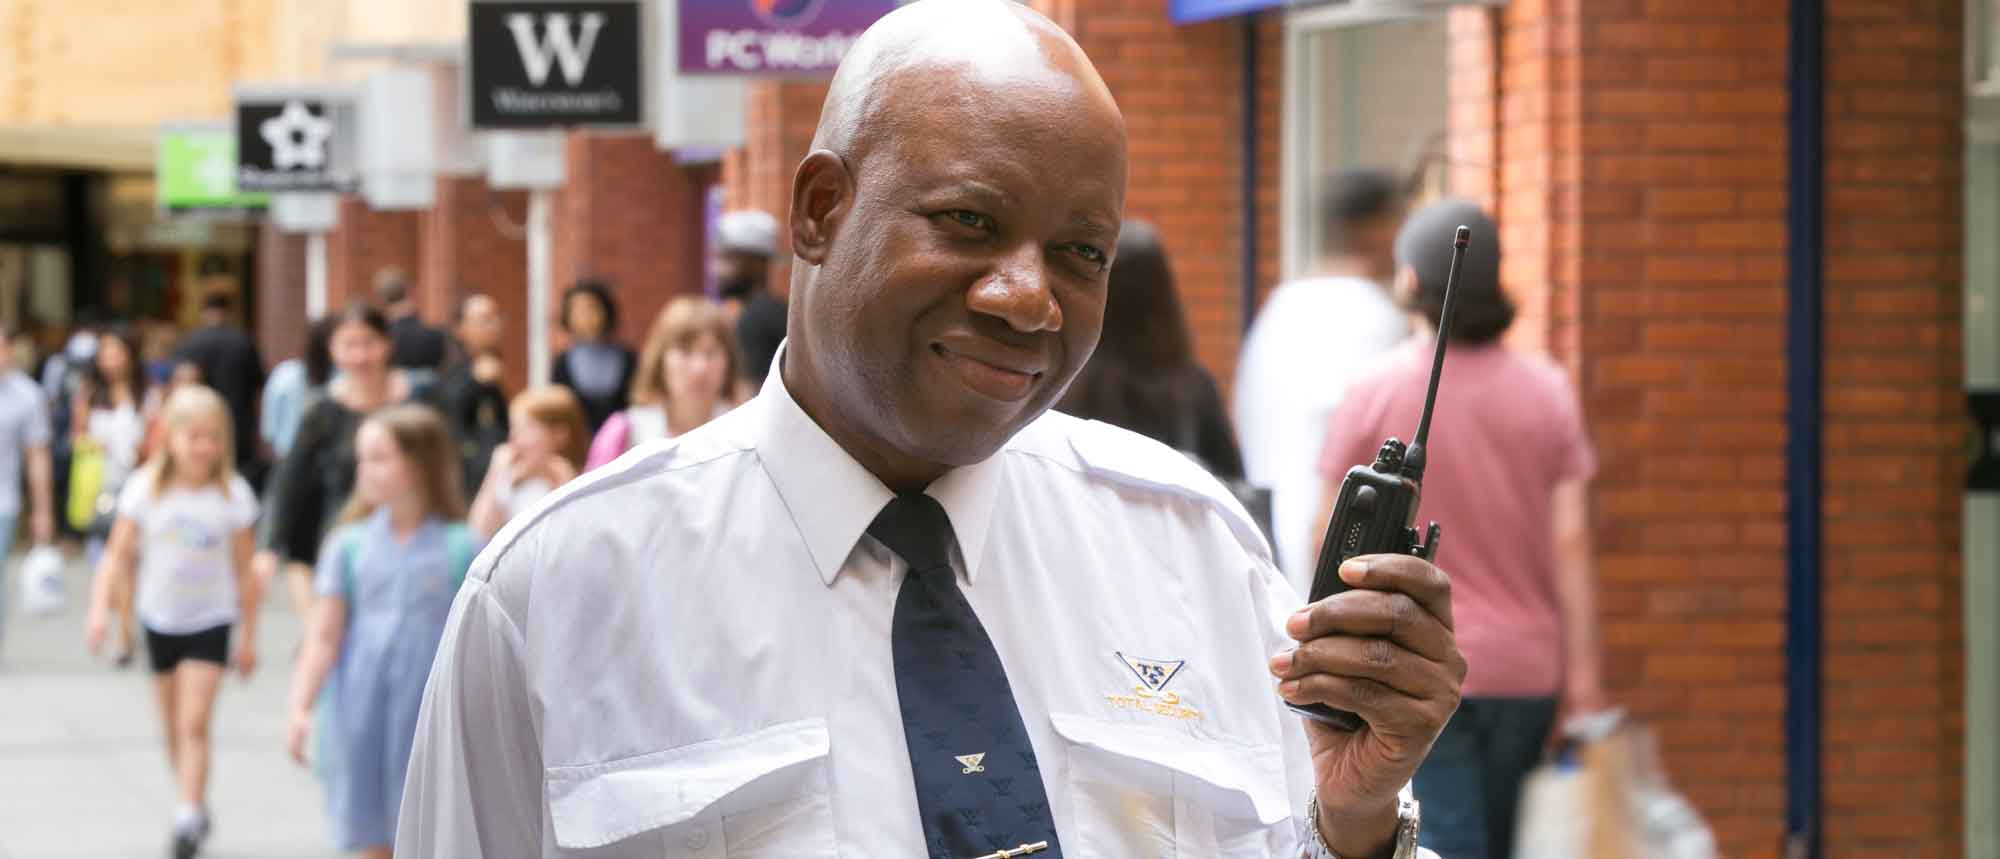 Ealing security officer